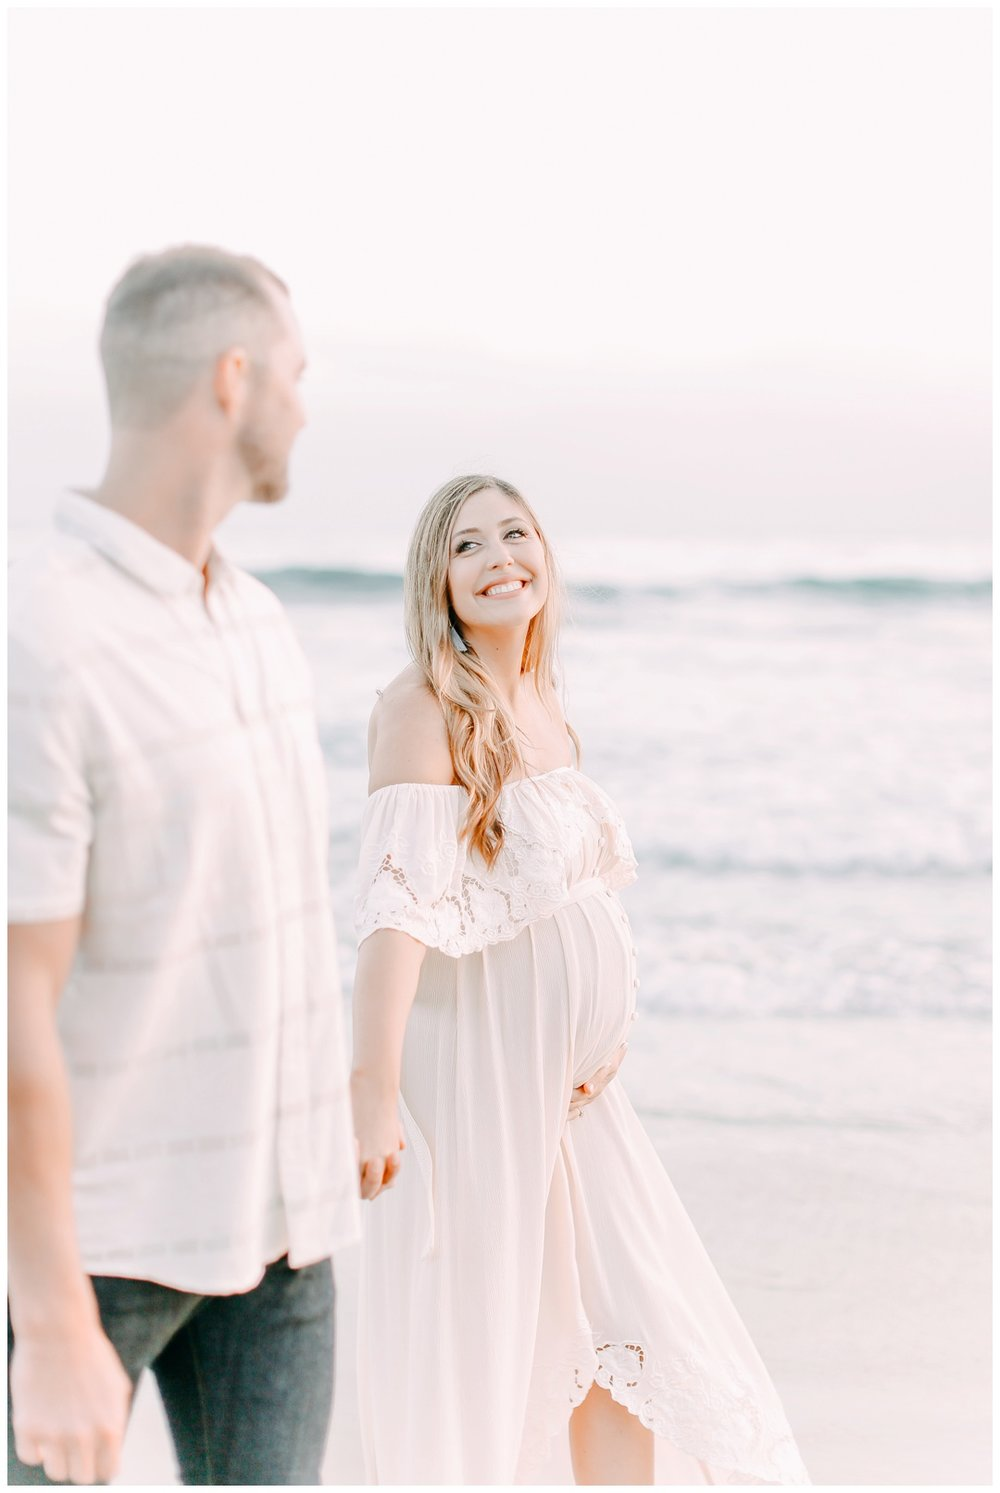 Newport_Beach_Maternity_Photographer_Beach_Maternity_Photography_Cori_Kleckner_Photography_1043.jpg